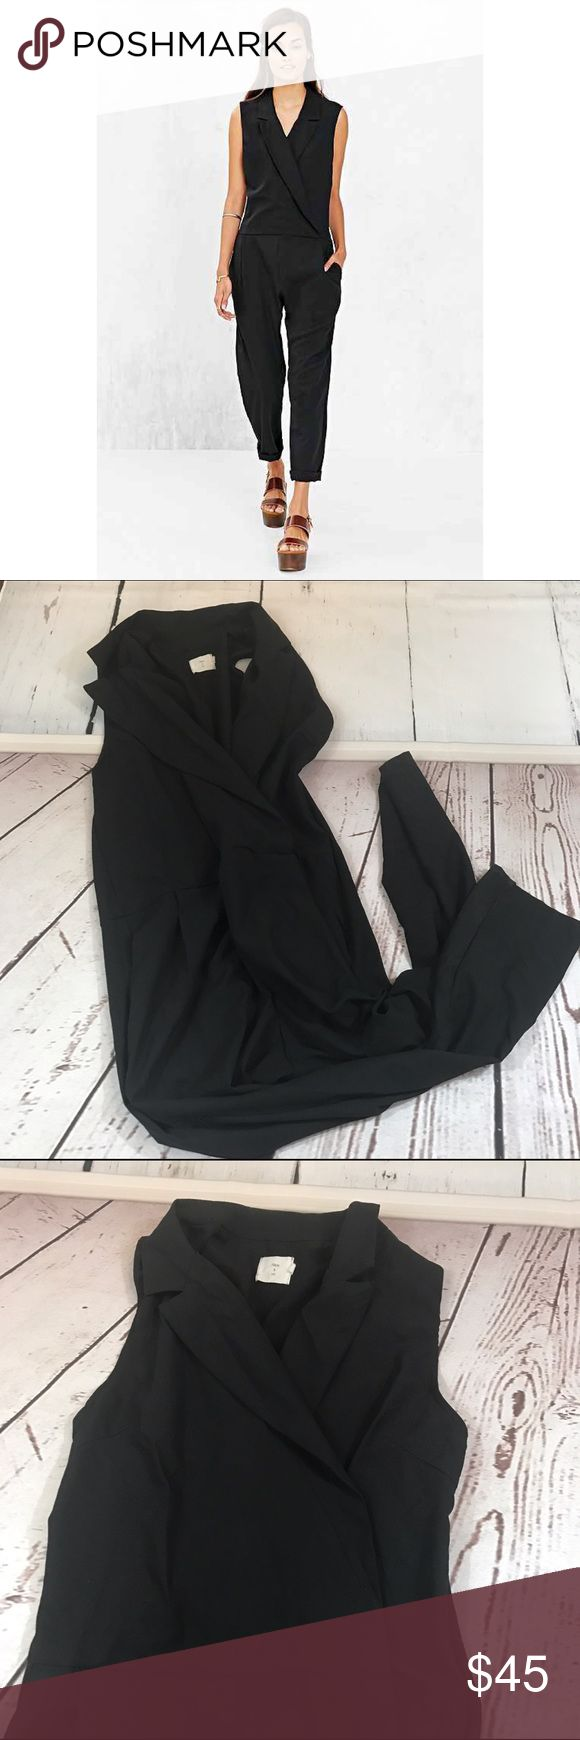 "💚💚 URBAN OUTFITTERS BLACK APOLLINE JUMPSUIT B42 Condition: Euc Approximate measurements (laying flat): 18"" bust 54.5"" Length 28"" inseam  Item location: bin 42  ❤no trades/no modeling❤ Urban Outfitters Pants Jumpsuits & Rompers"